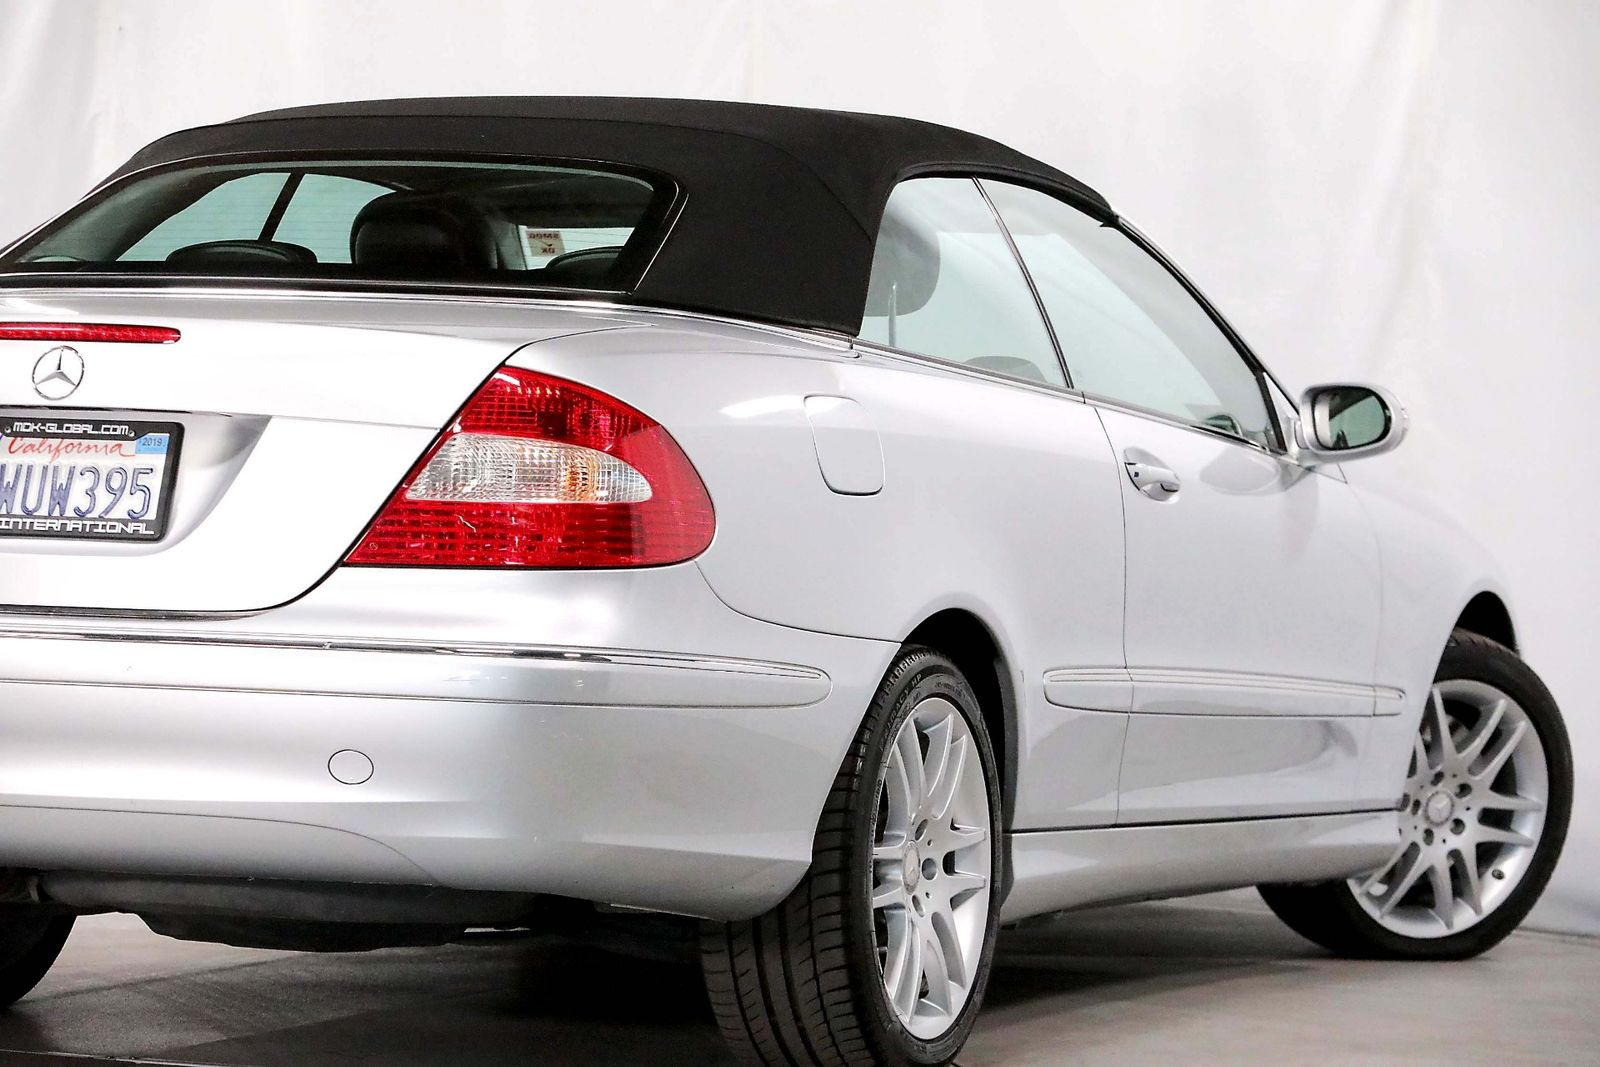 2008 Mercedes Benz Clk350 Premium 1 Pkg Only 60k Miles City Uhi Wiring California Mdk International